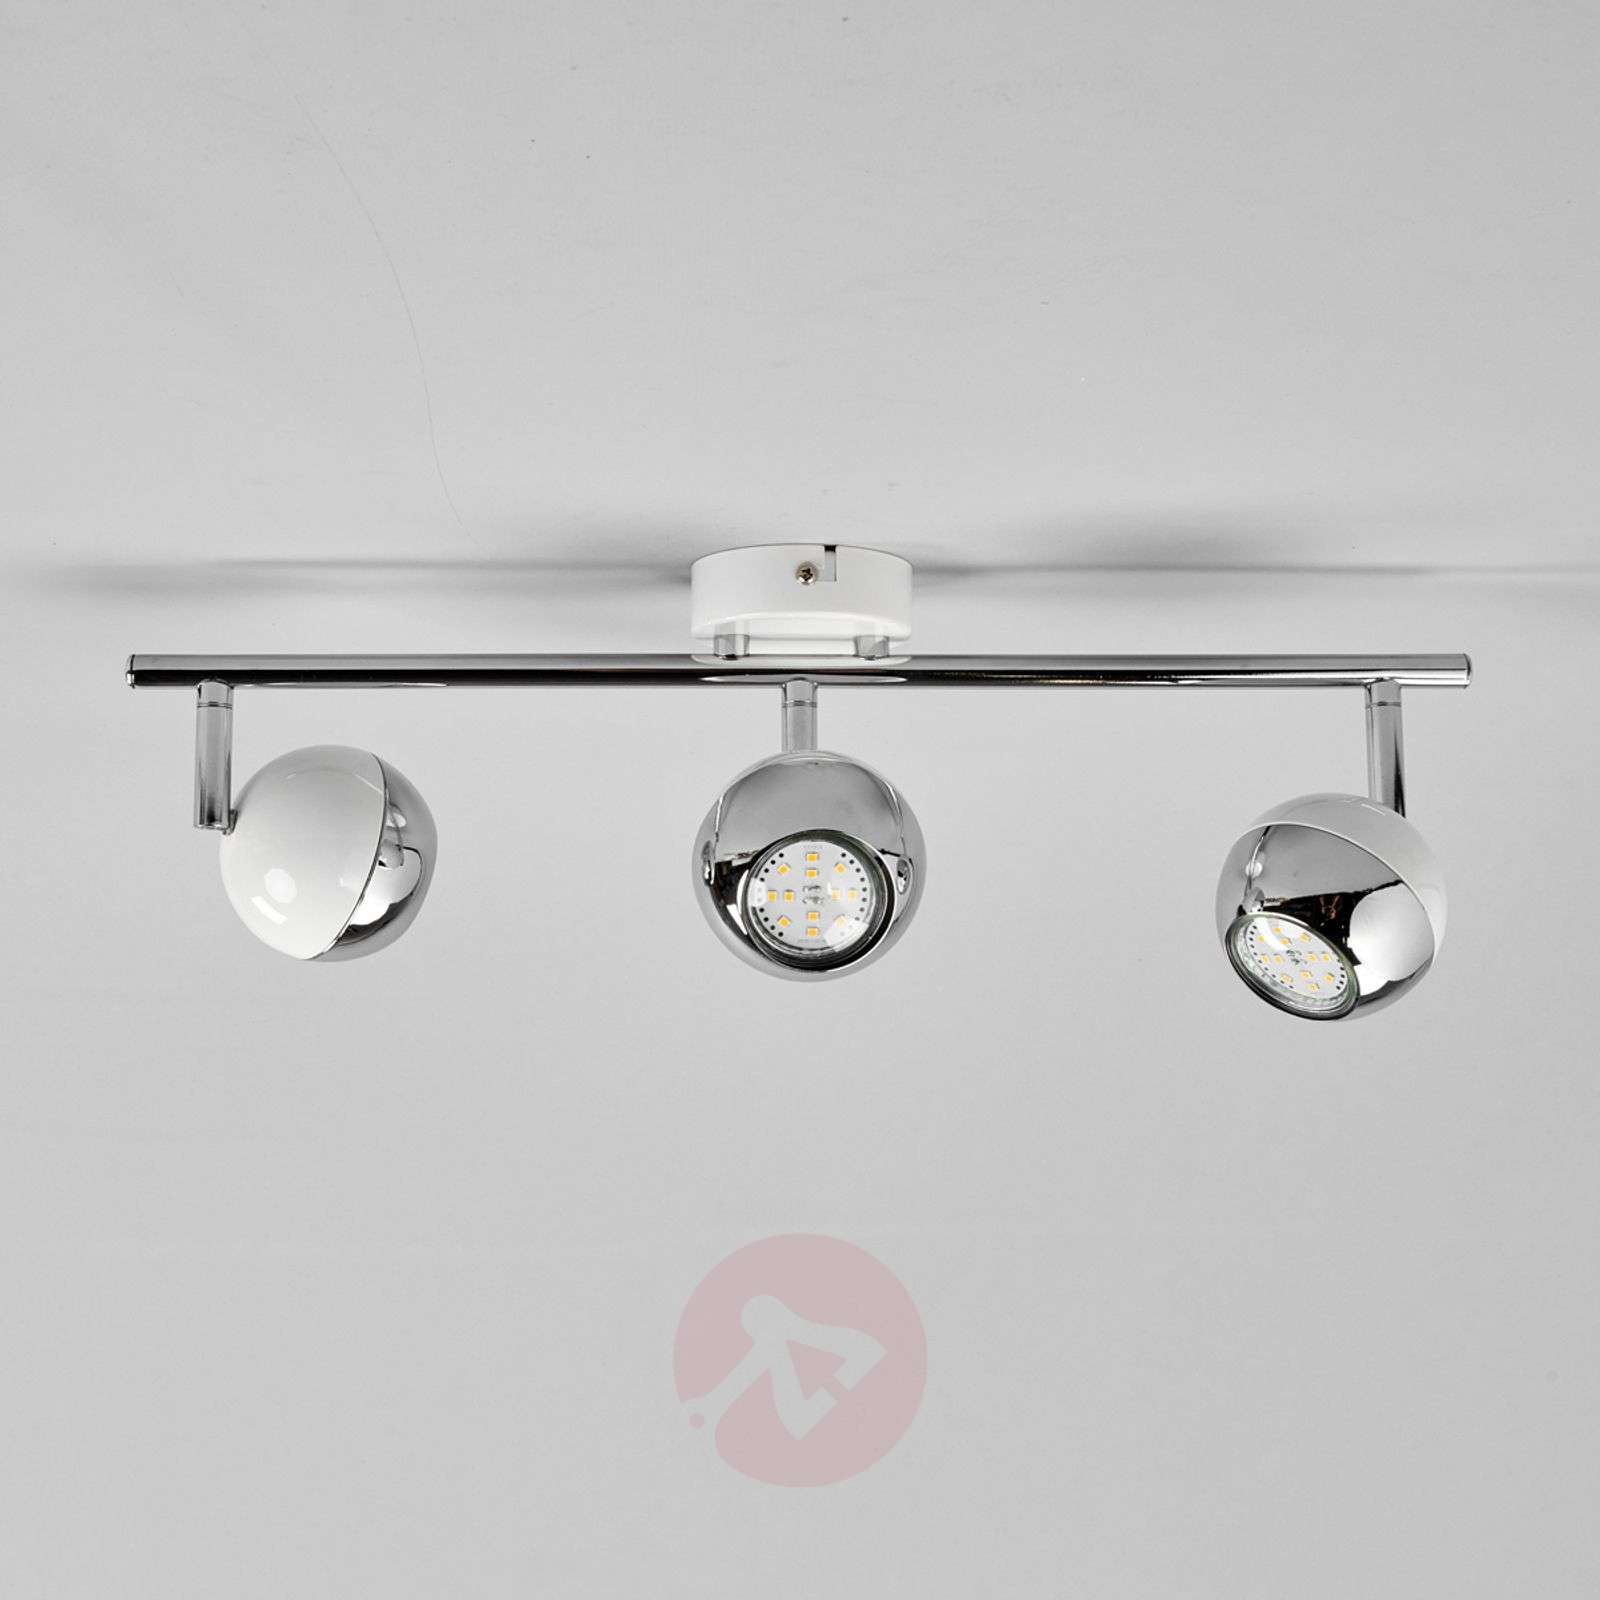 LED spotlight Arvin with three lamp heads-9970114-03